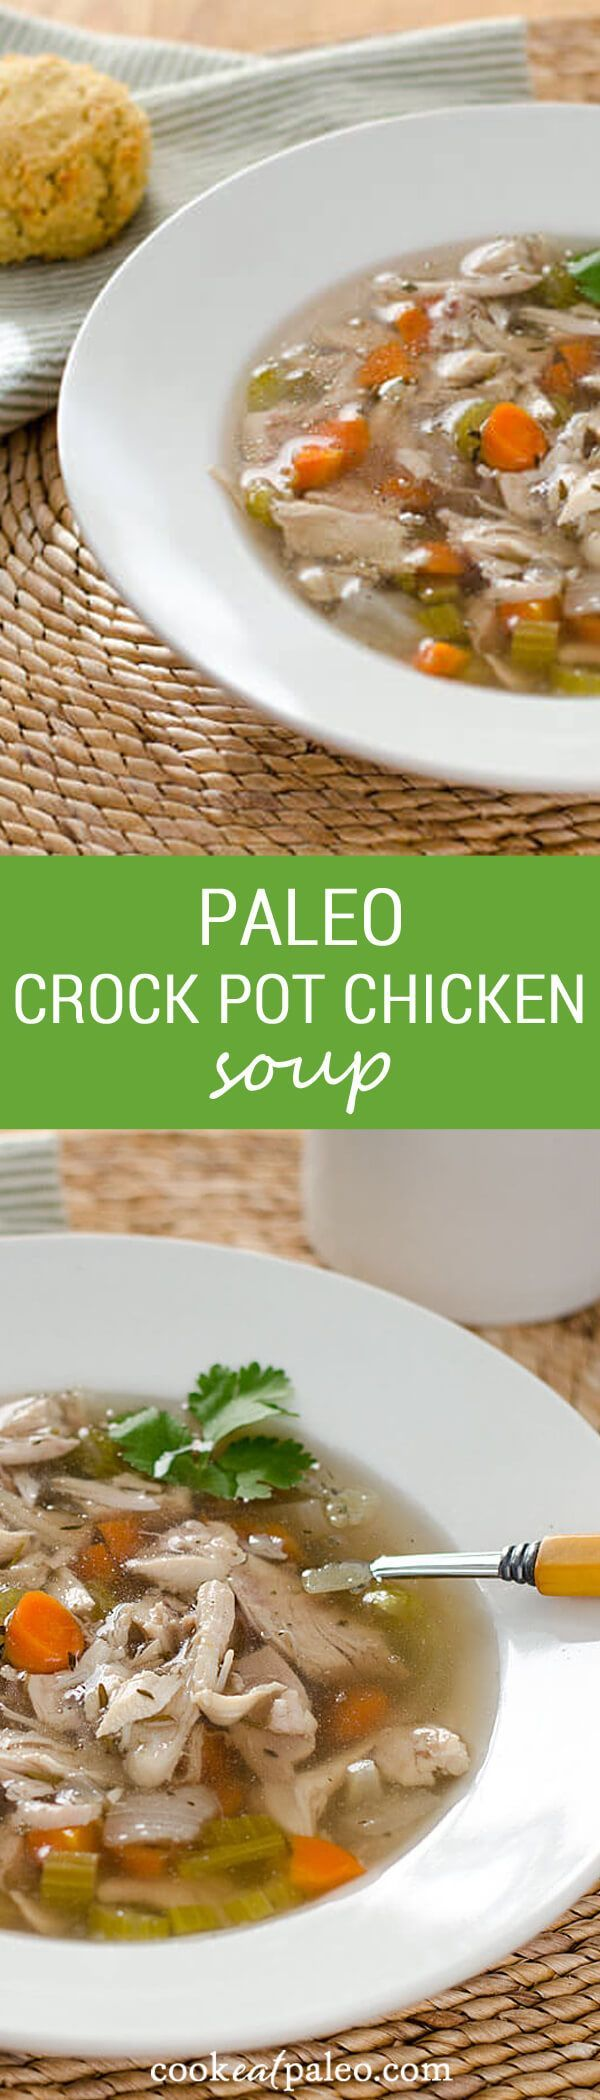 This paleo crock pot chicken soup is comfort food pure and simple. With just a few ingredients, this recipe is gluten-free, grain-free and dairy-free. ~ cookeatpaleo.com